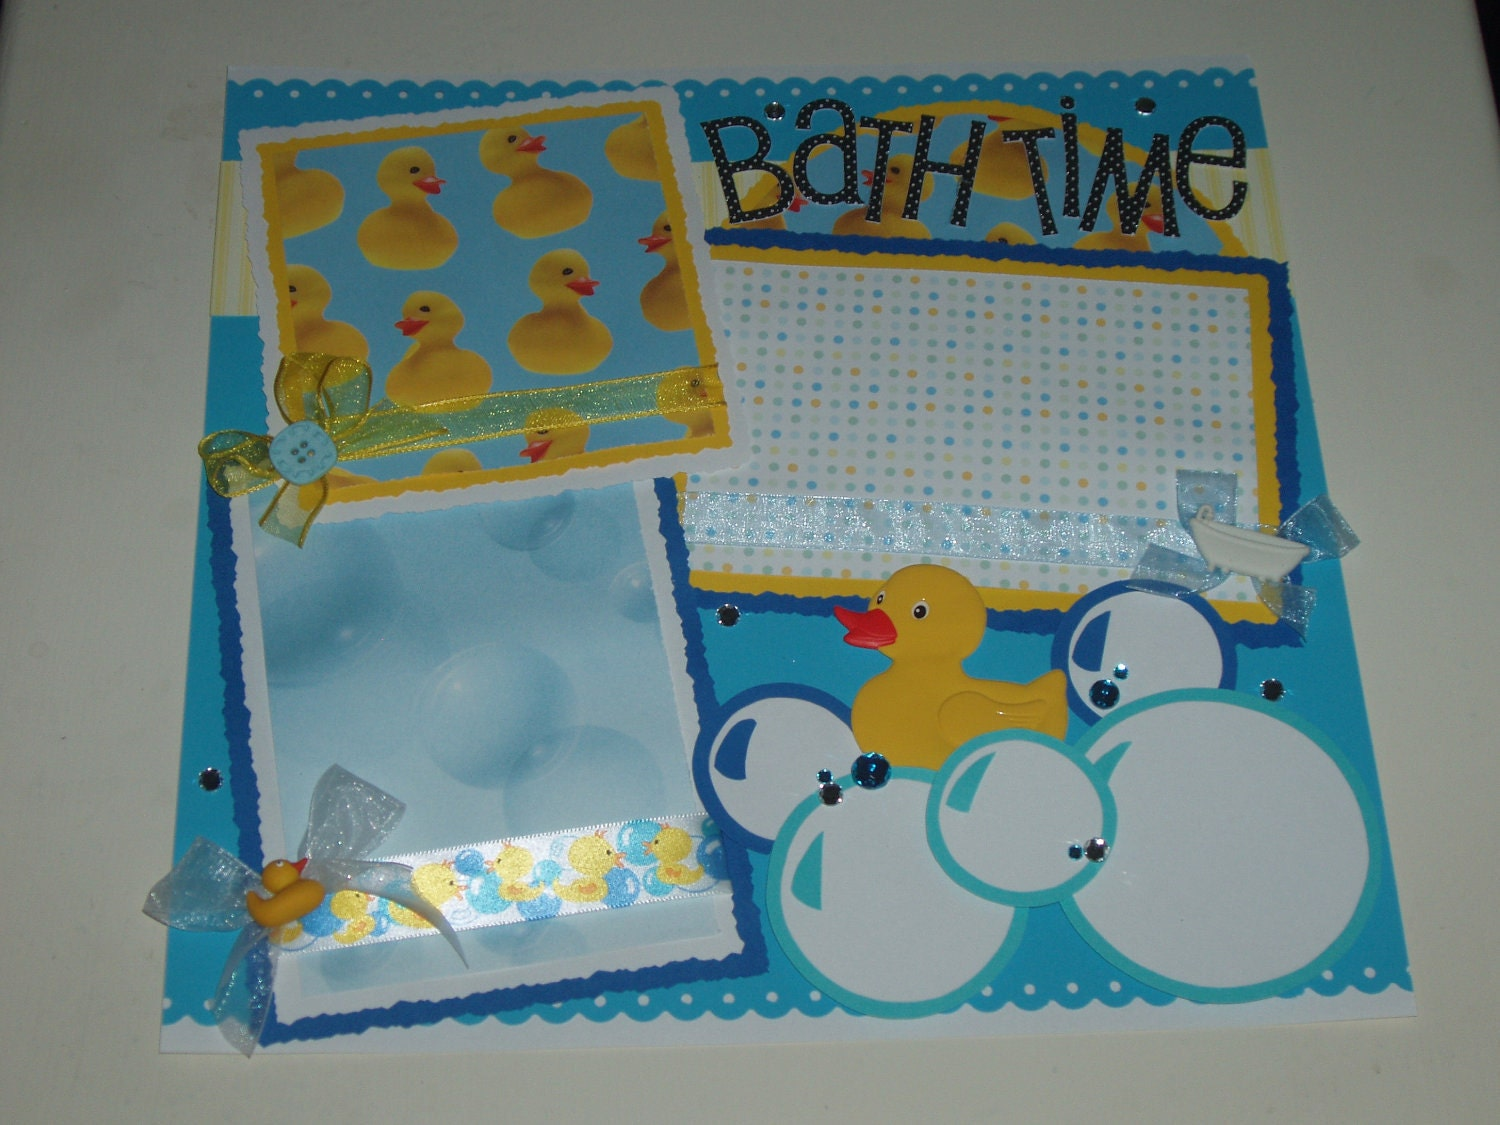 New Baby Bath Time Bubbles Premade Scrapbook Page by KARI